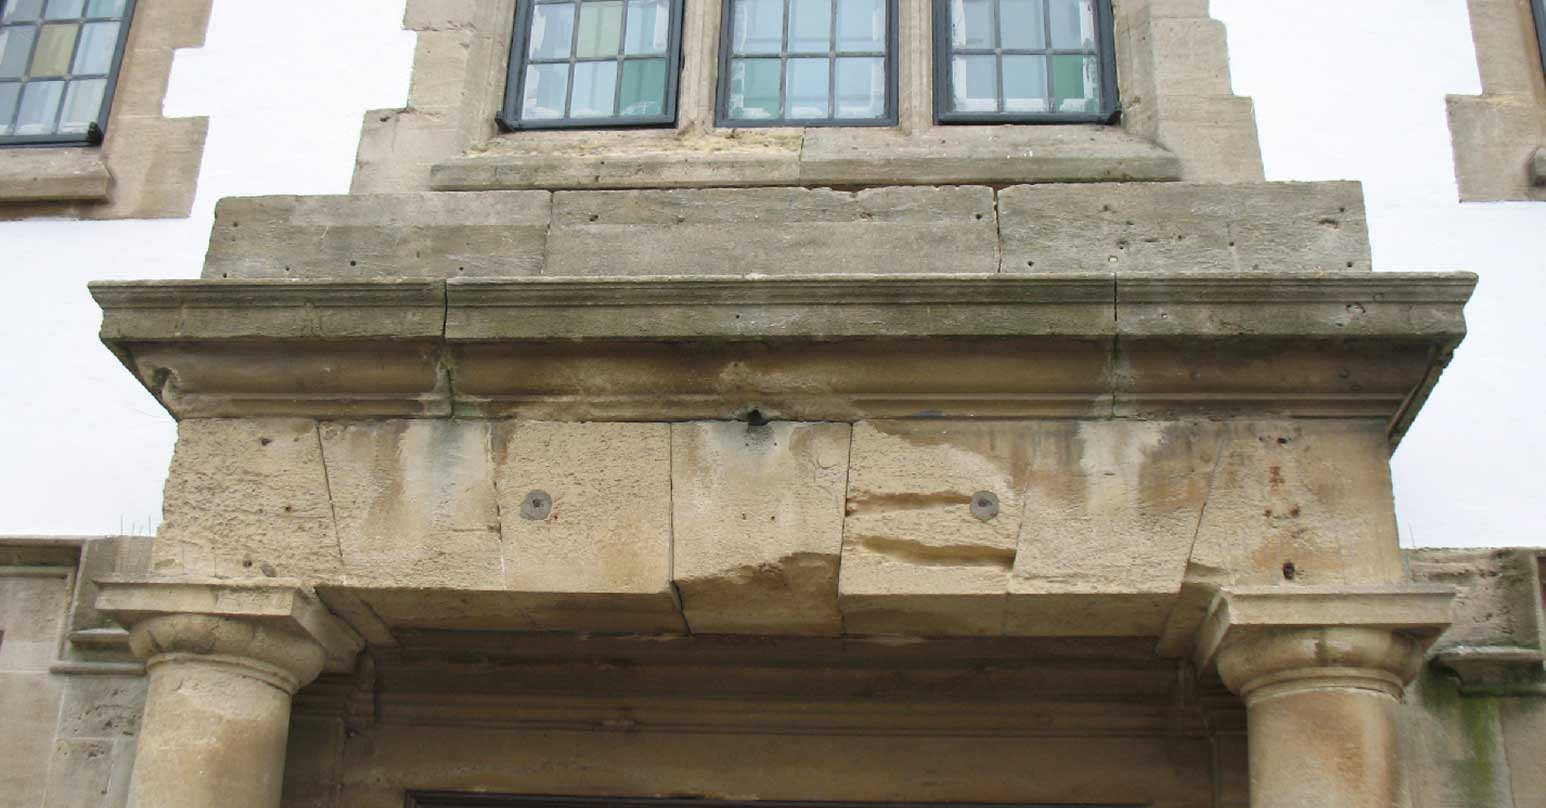 Repair to the exterior of a stone building